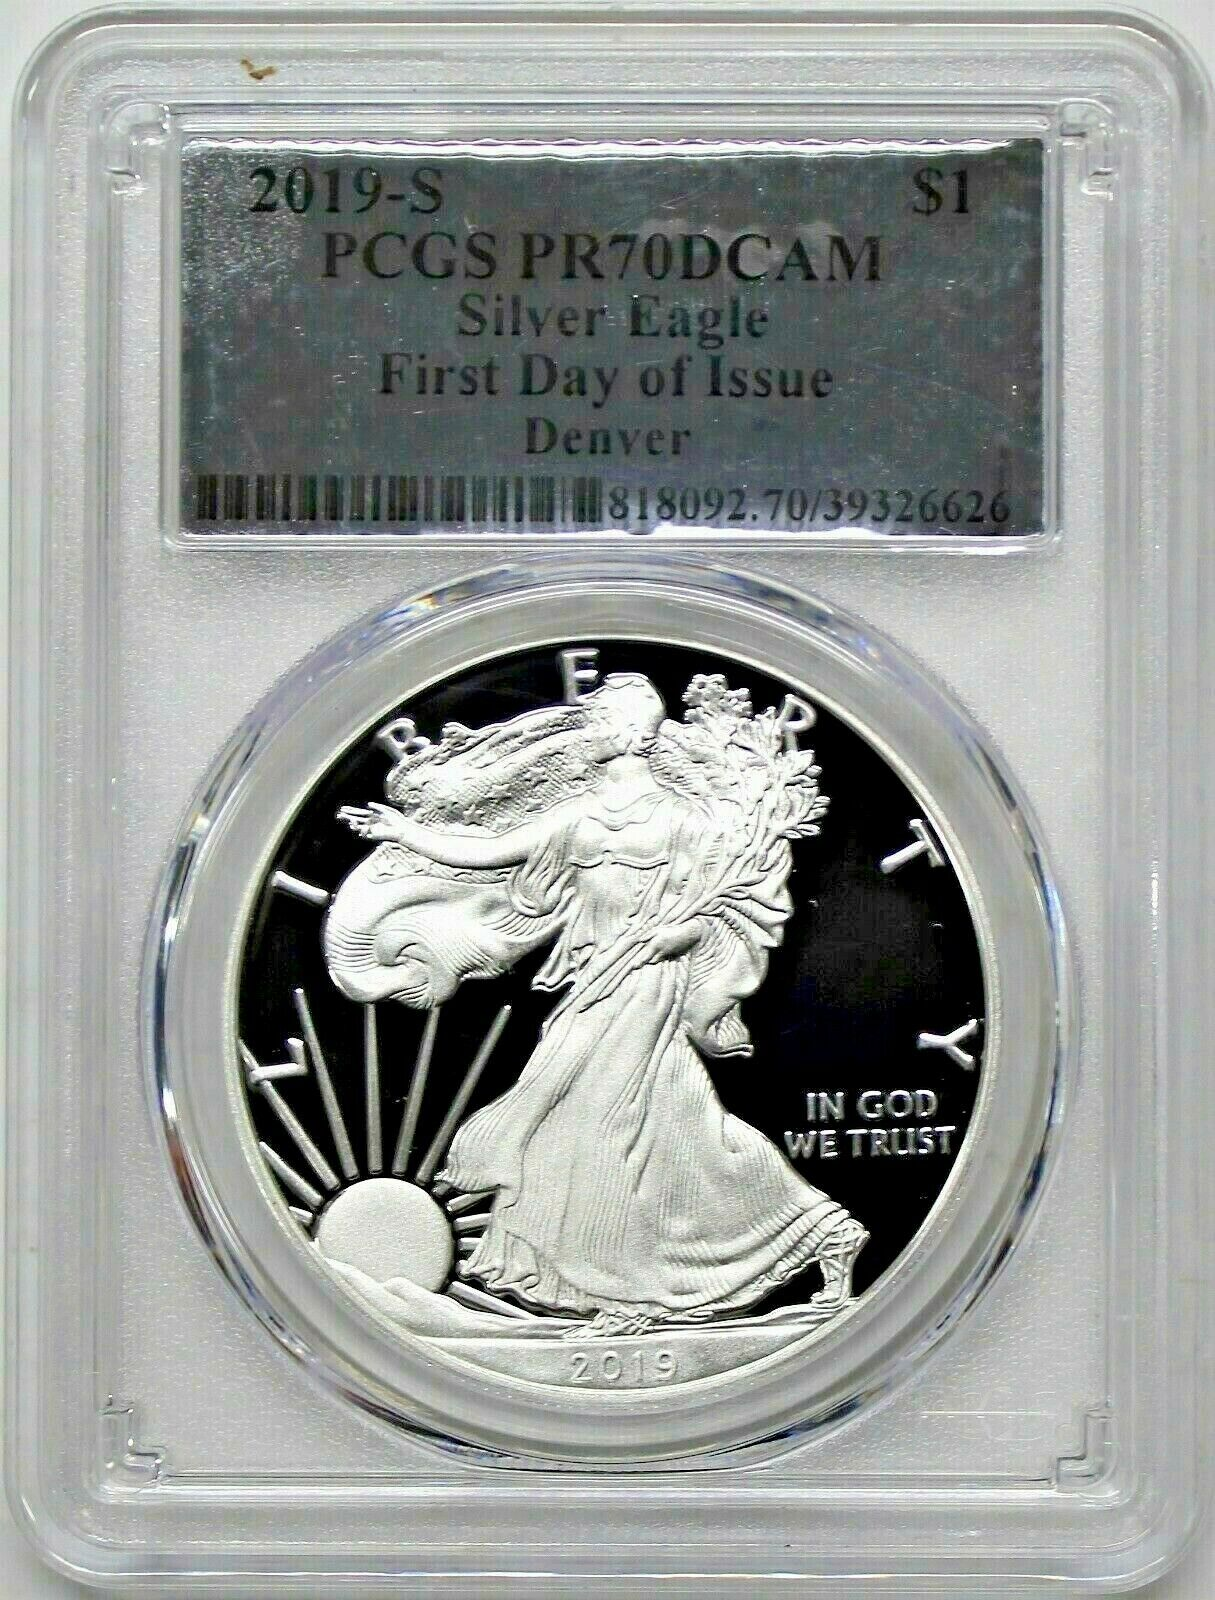 2019-S $1 American Silver Eagle Limited Edition Proof Set PR70DCAM FS PCGS